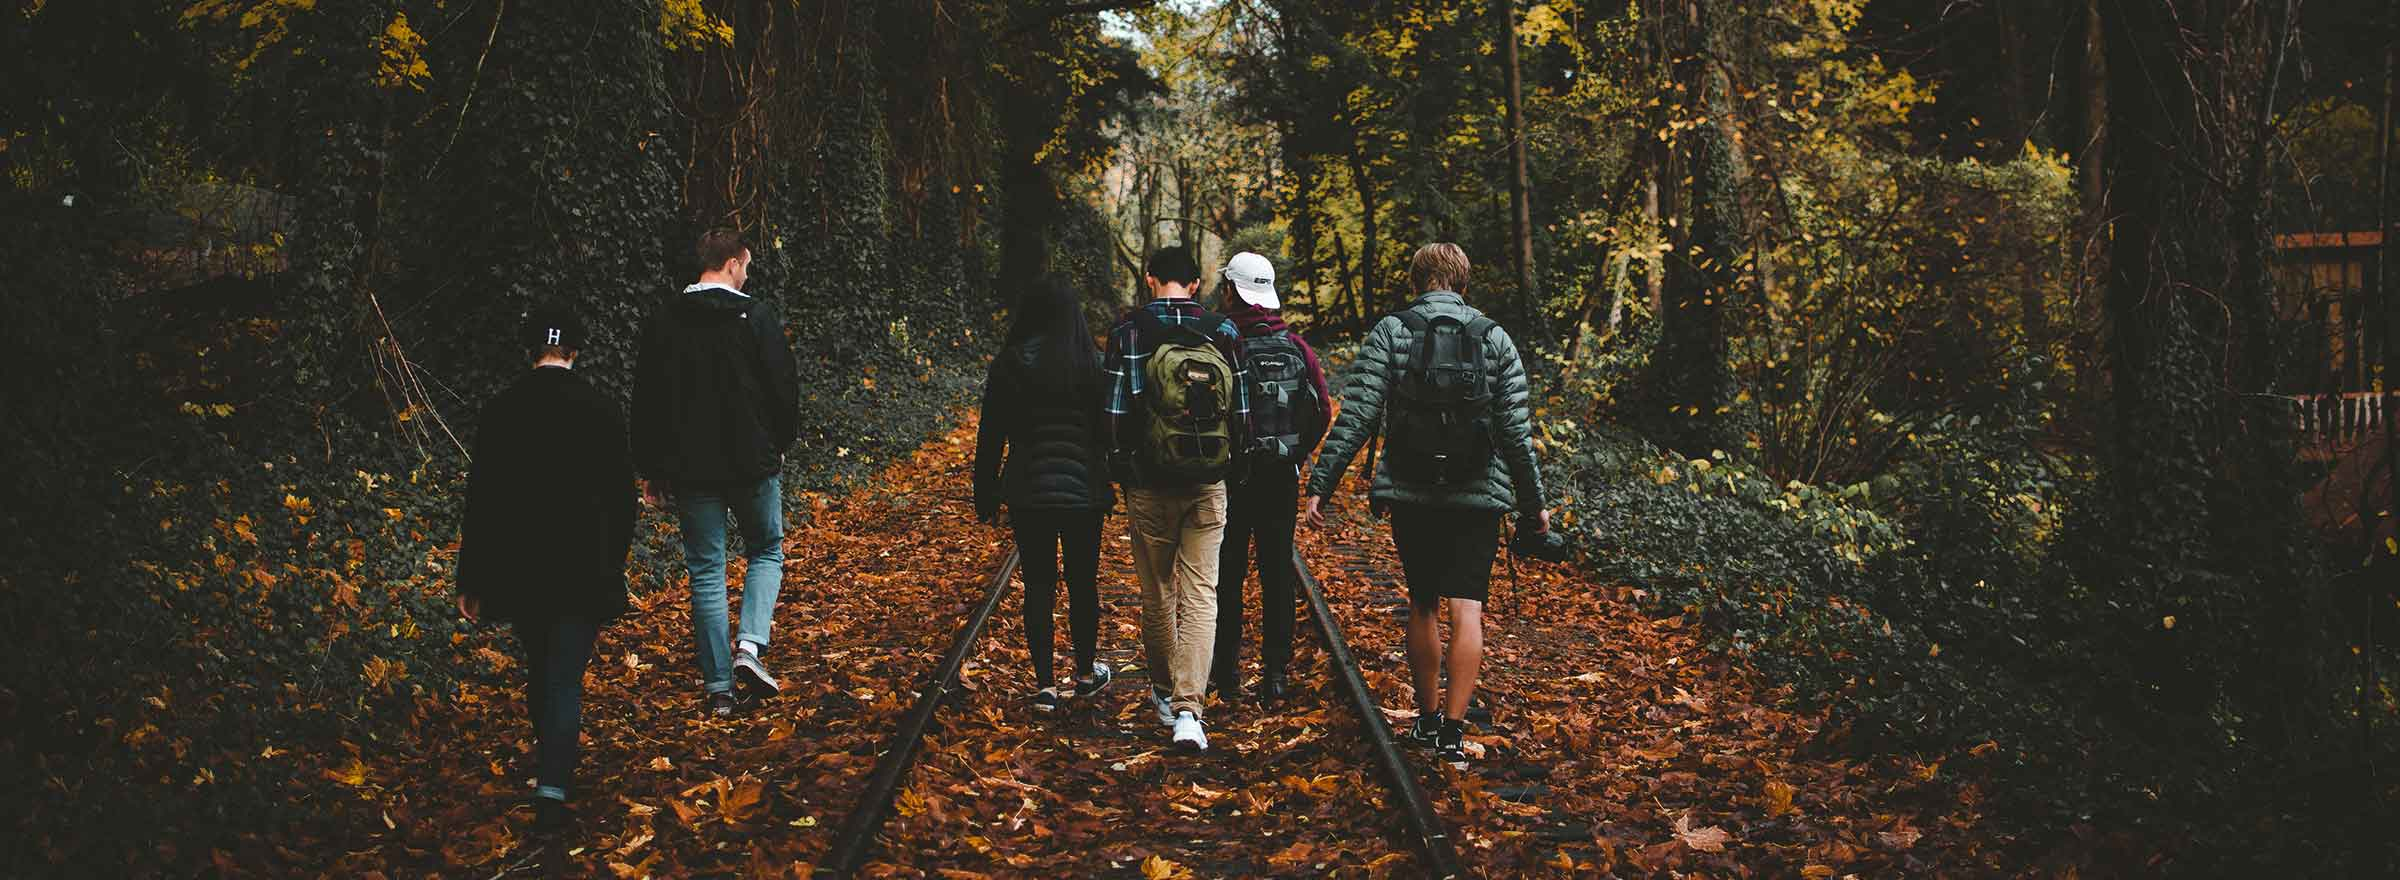 a group of young adults walking through the woods, representing how a nonprofit can harness the power of quickbooks to support vulnerable youth